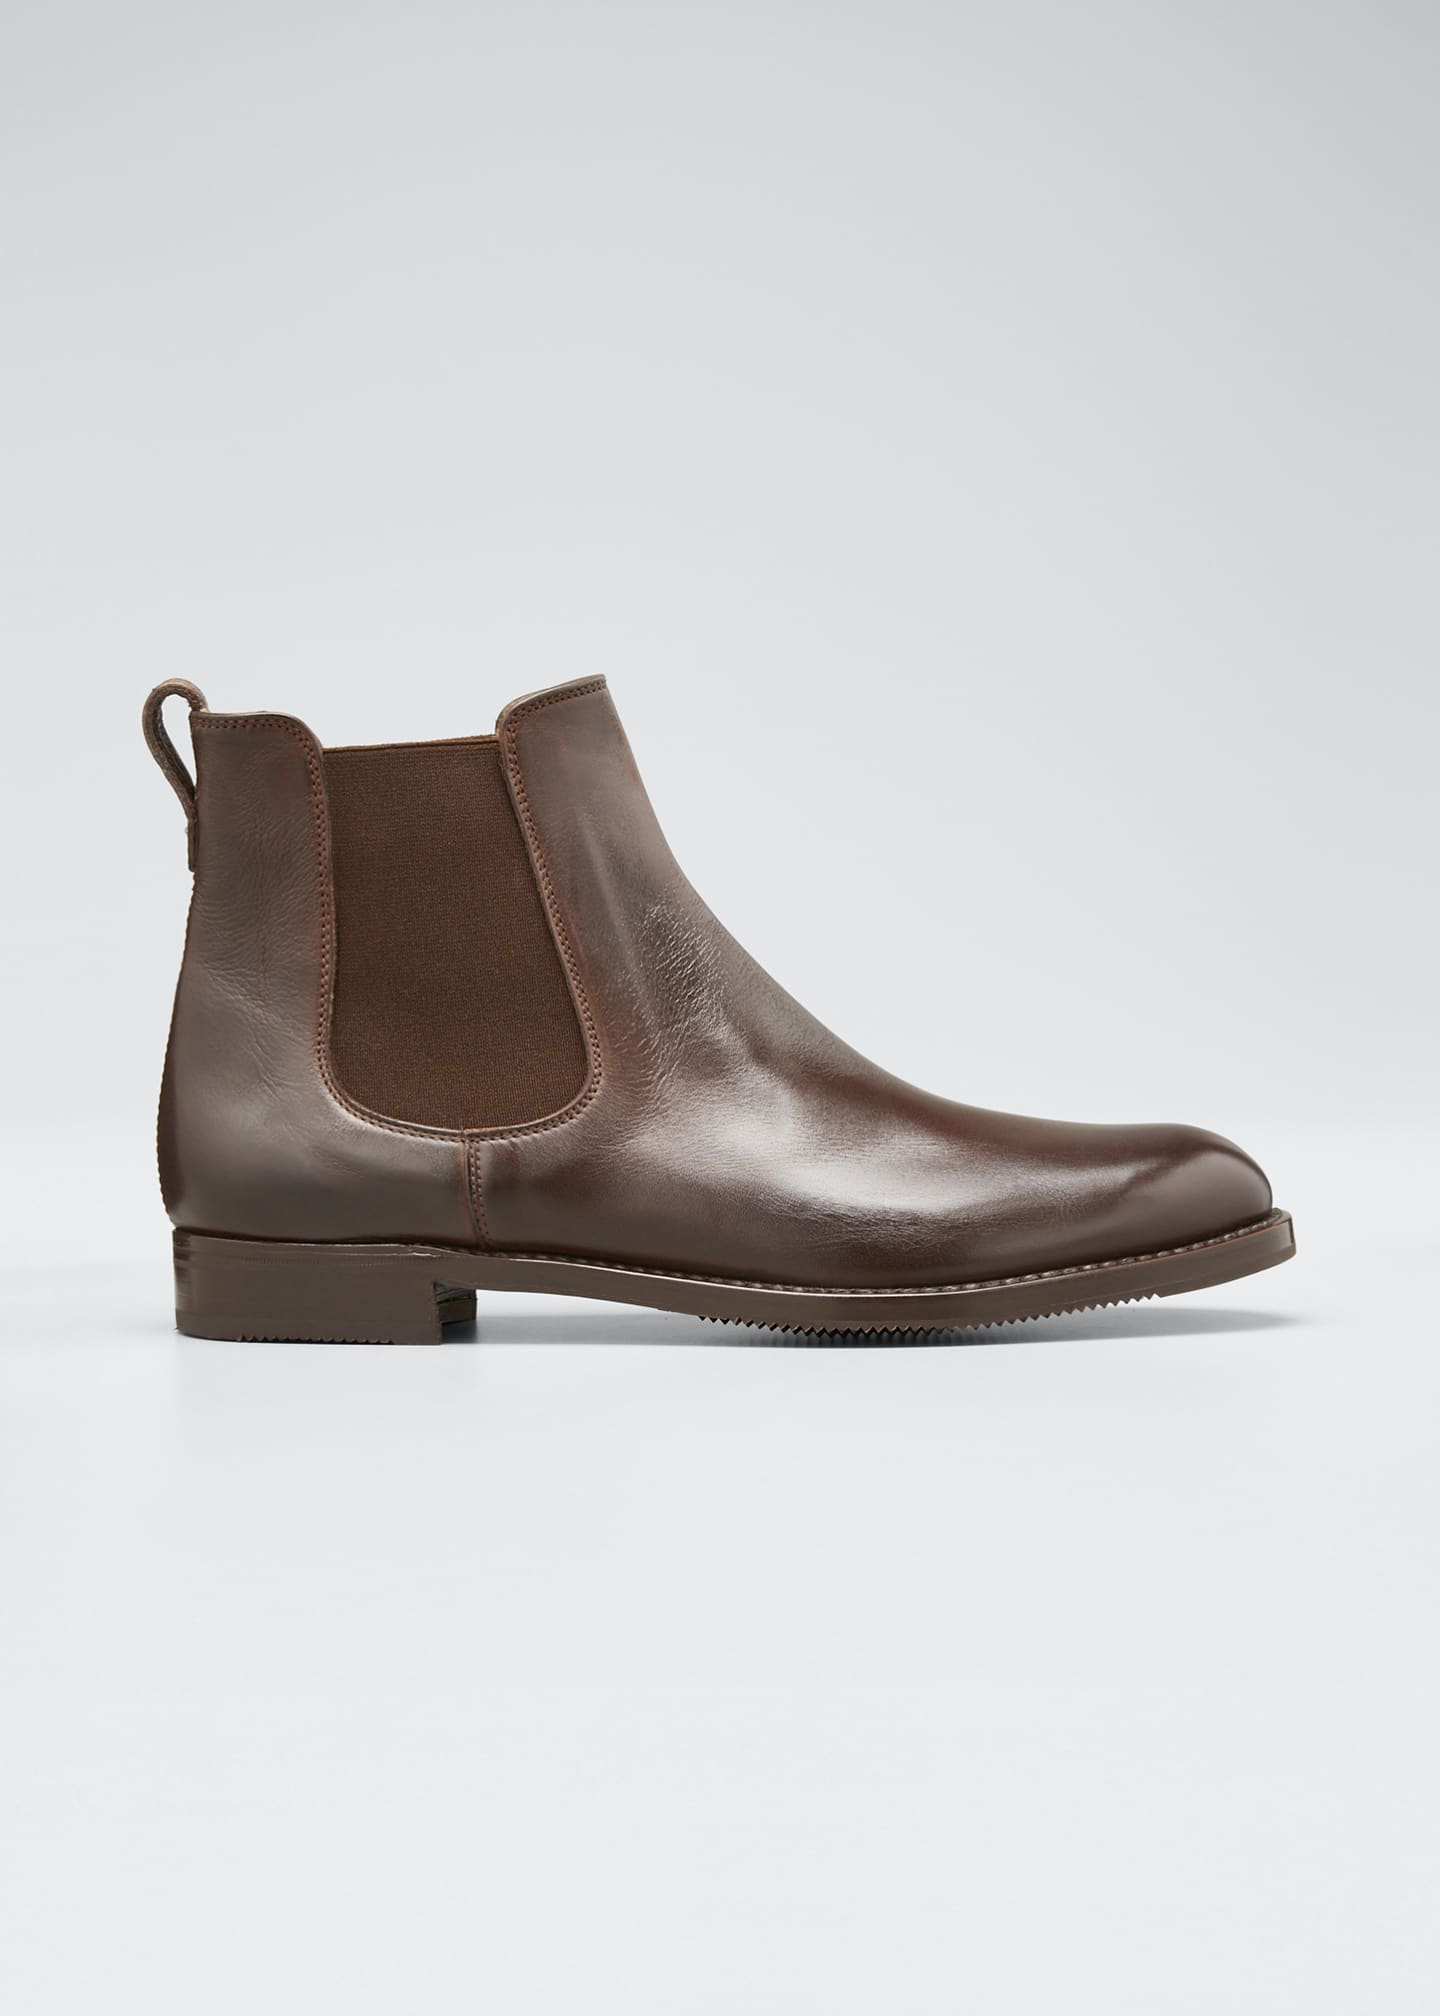 Gravati Tumbled Leather Chelsea Boot